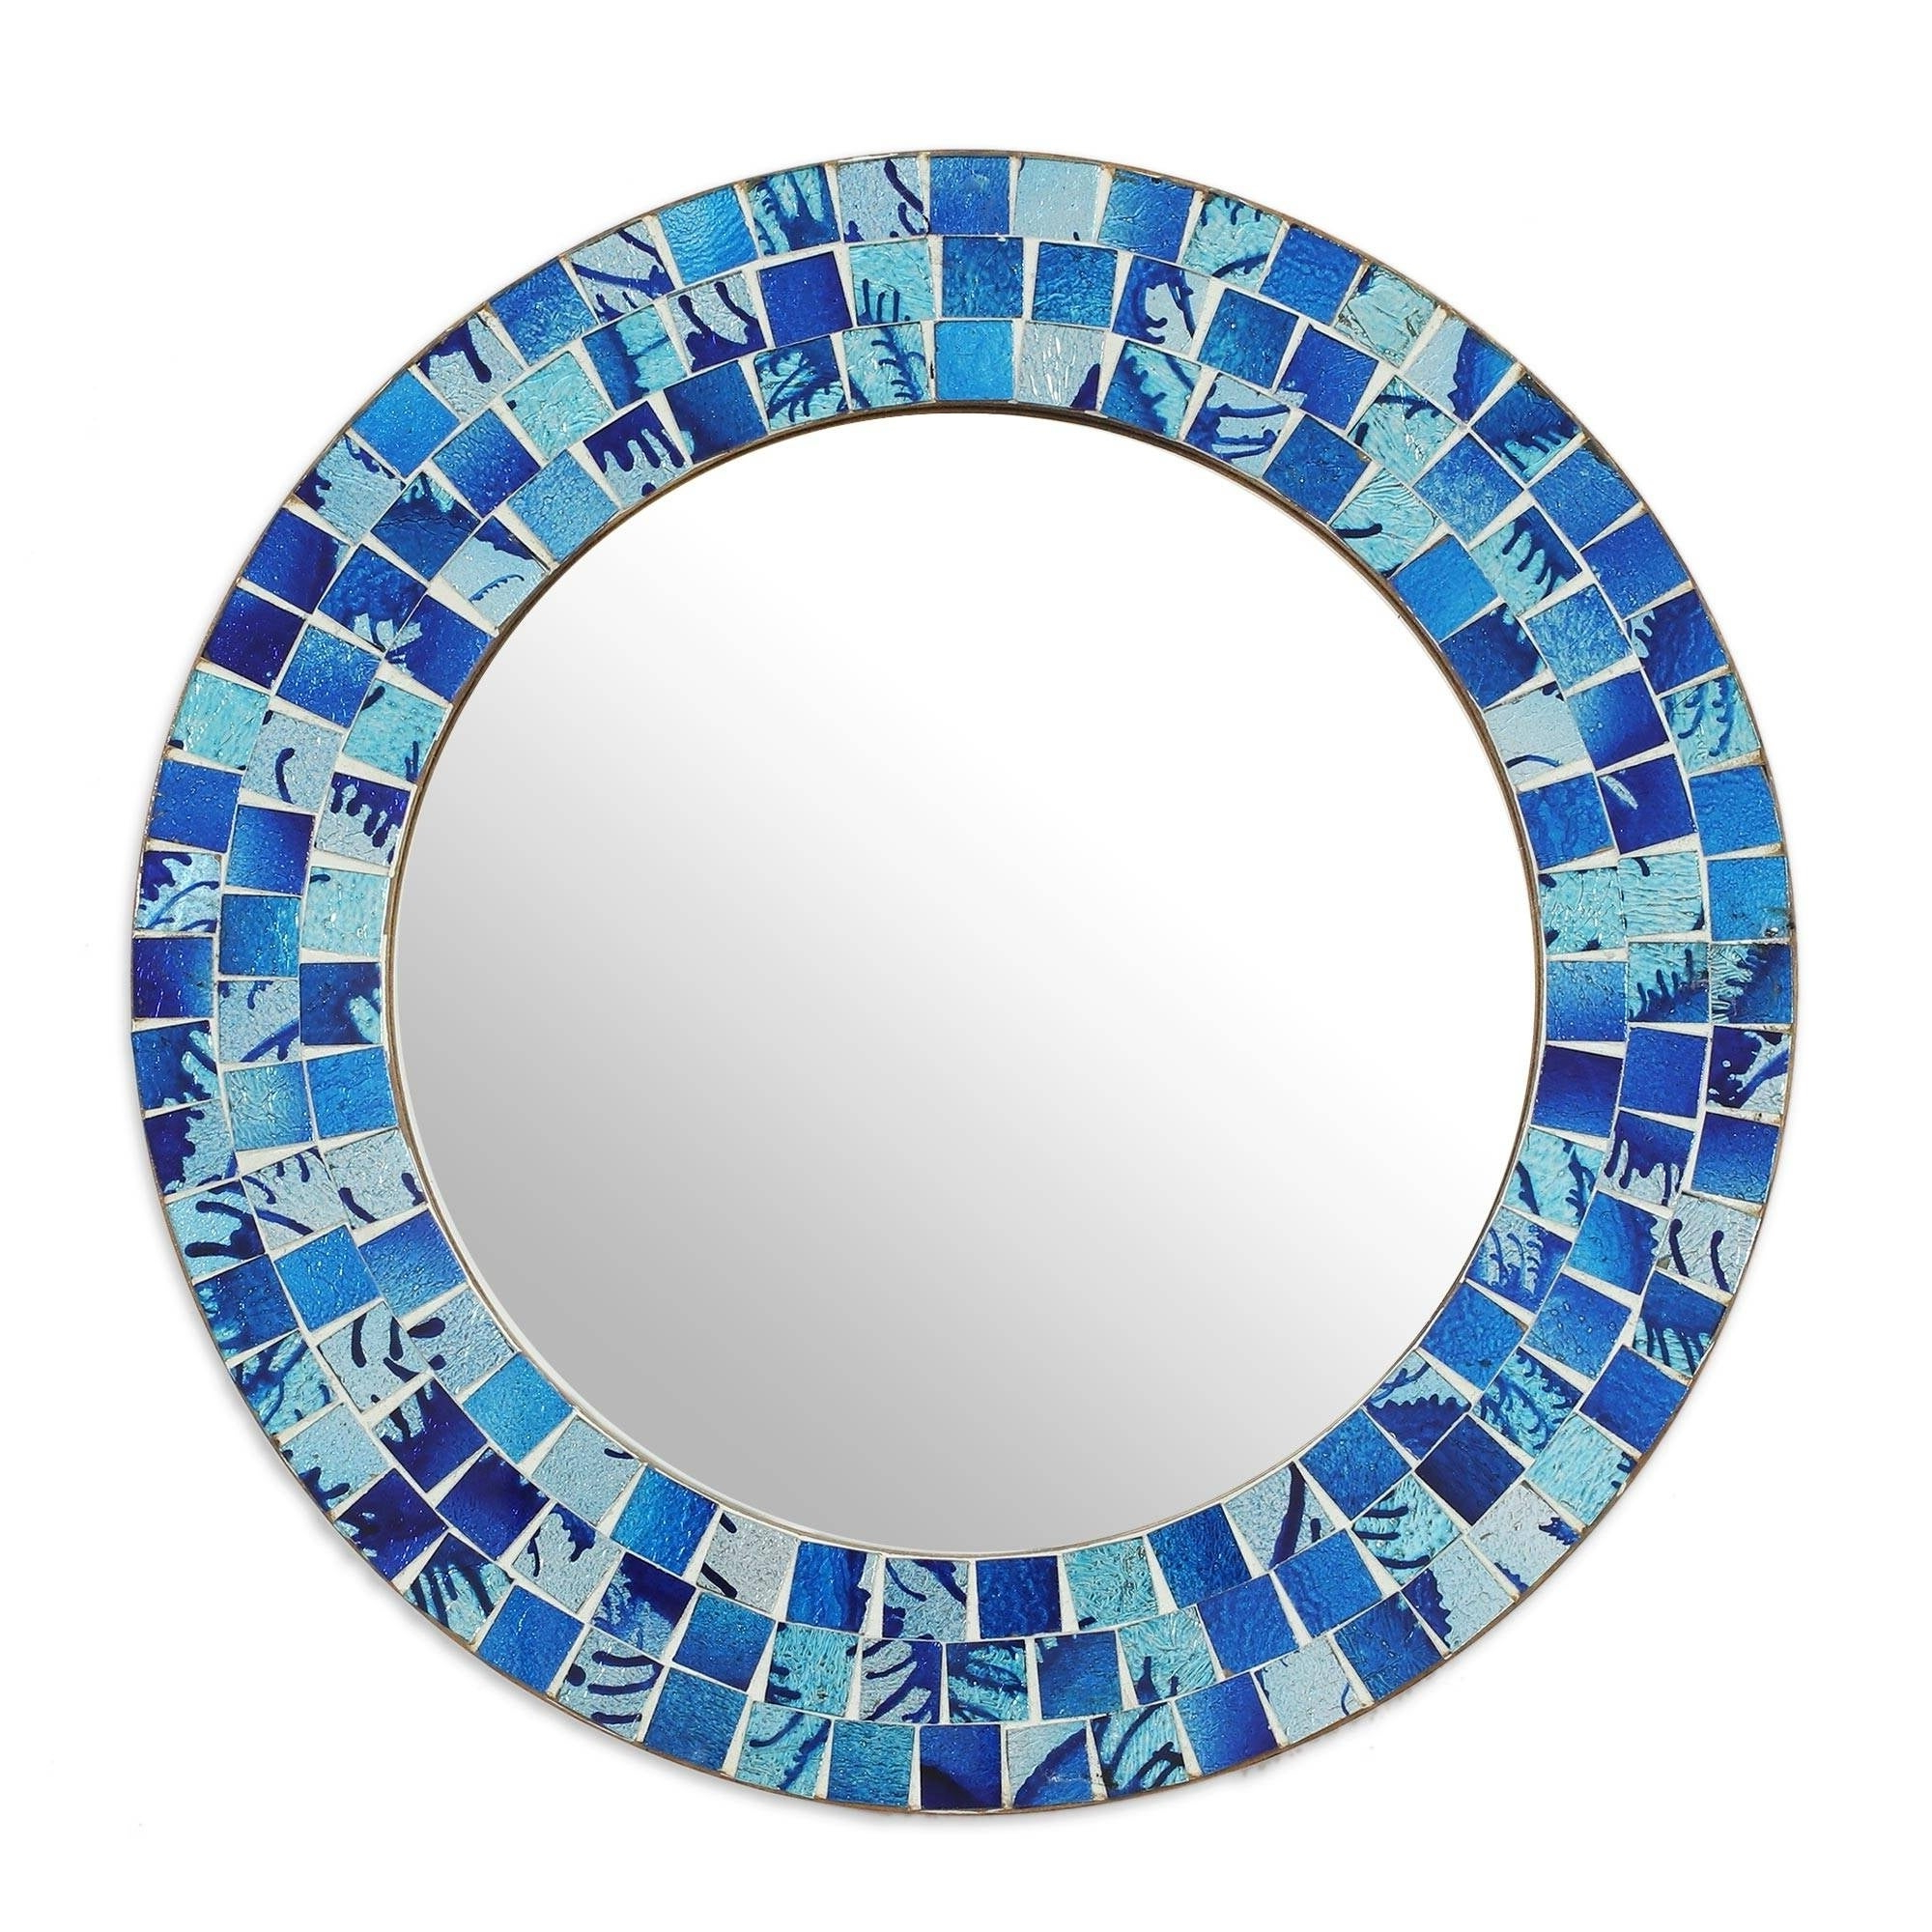 Fashionable Glass Mosaic Wall Mirrors With Regard To Handmade Tropical Ocean Glass Mosaic Round Wall Mirror (India) – Blue (View 8 of 20)